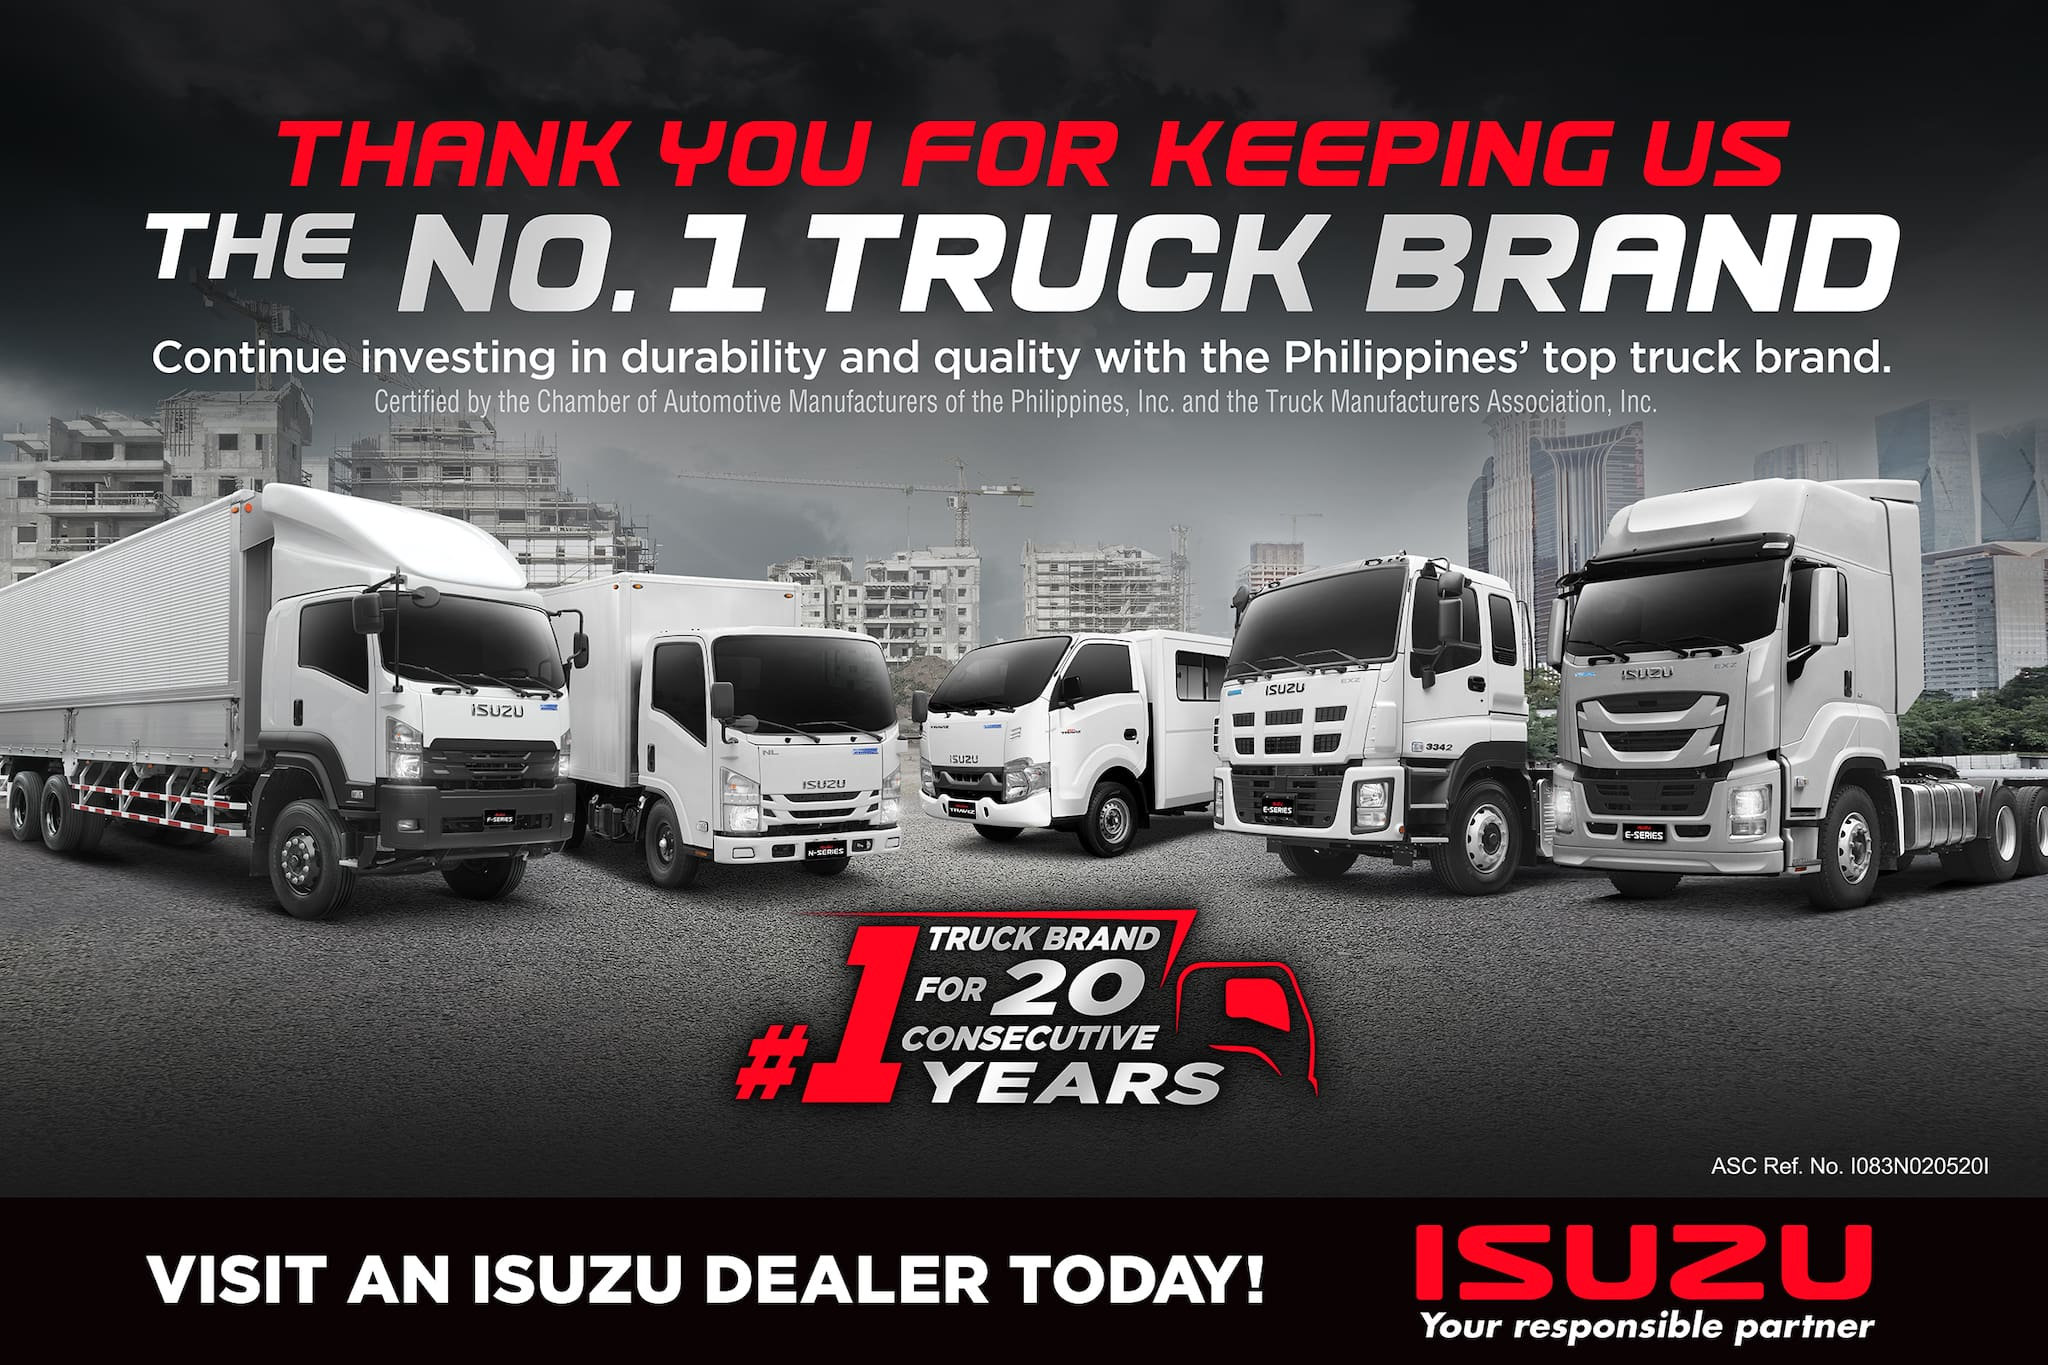 Two-Decade Strong: Isuzu PH is Truck Sales Leader for 20 Years